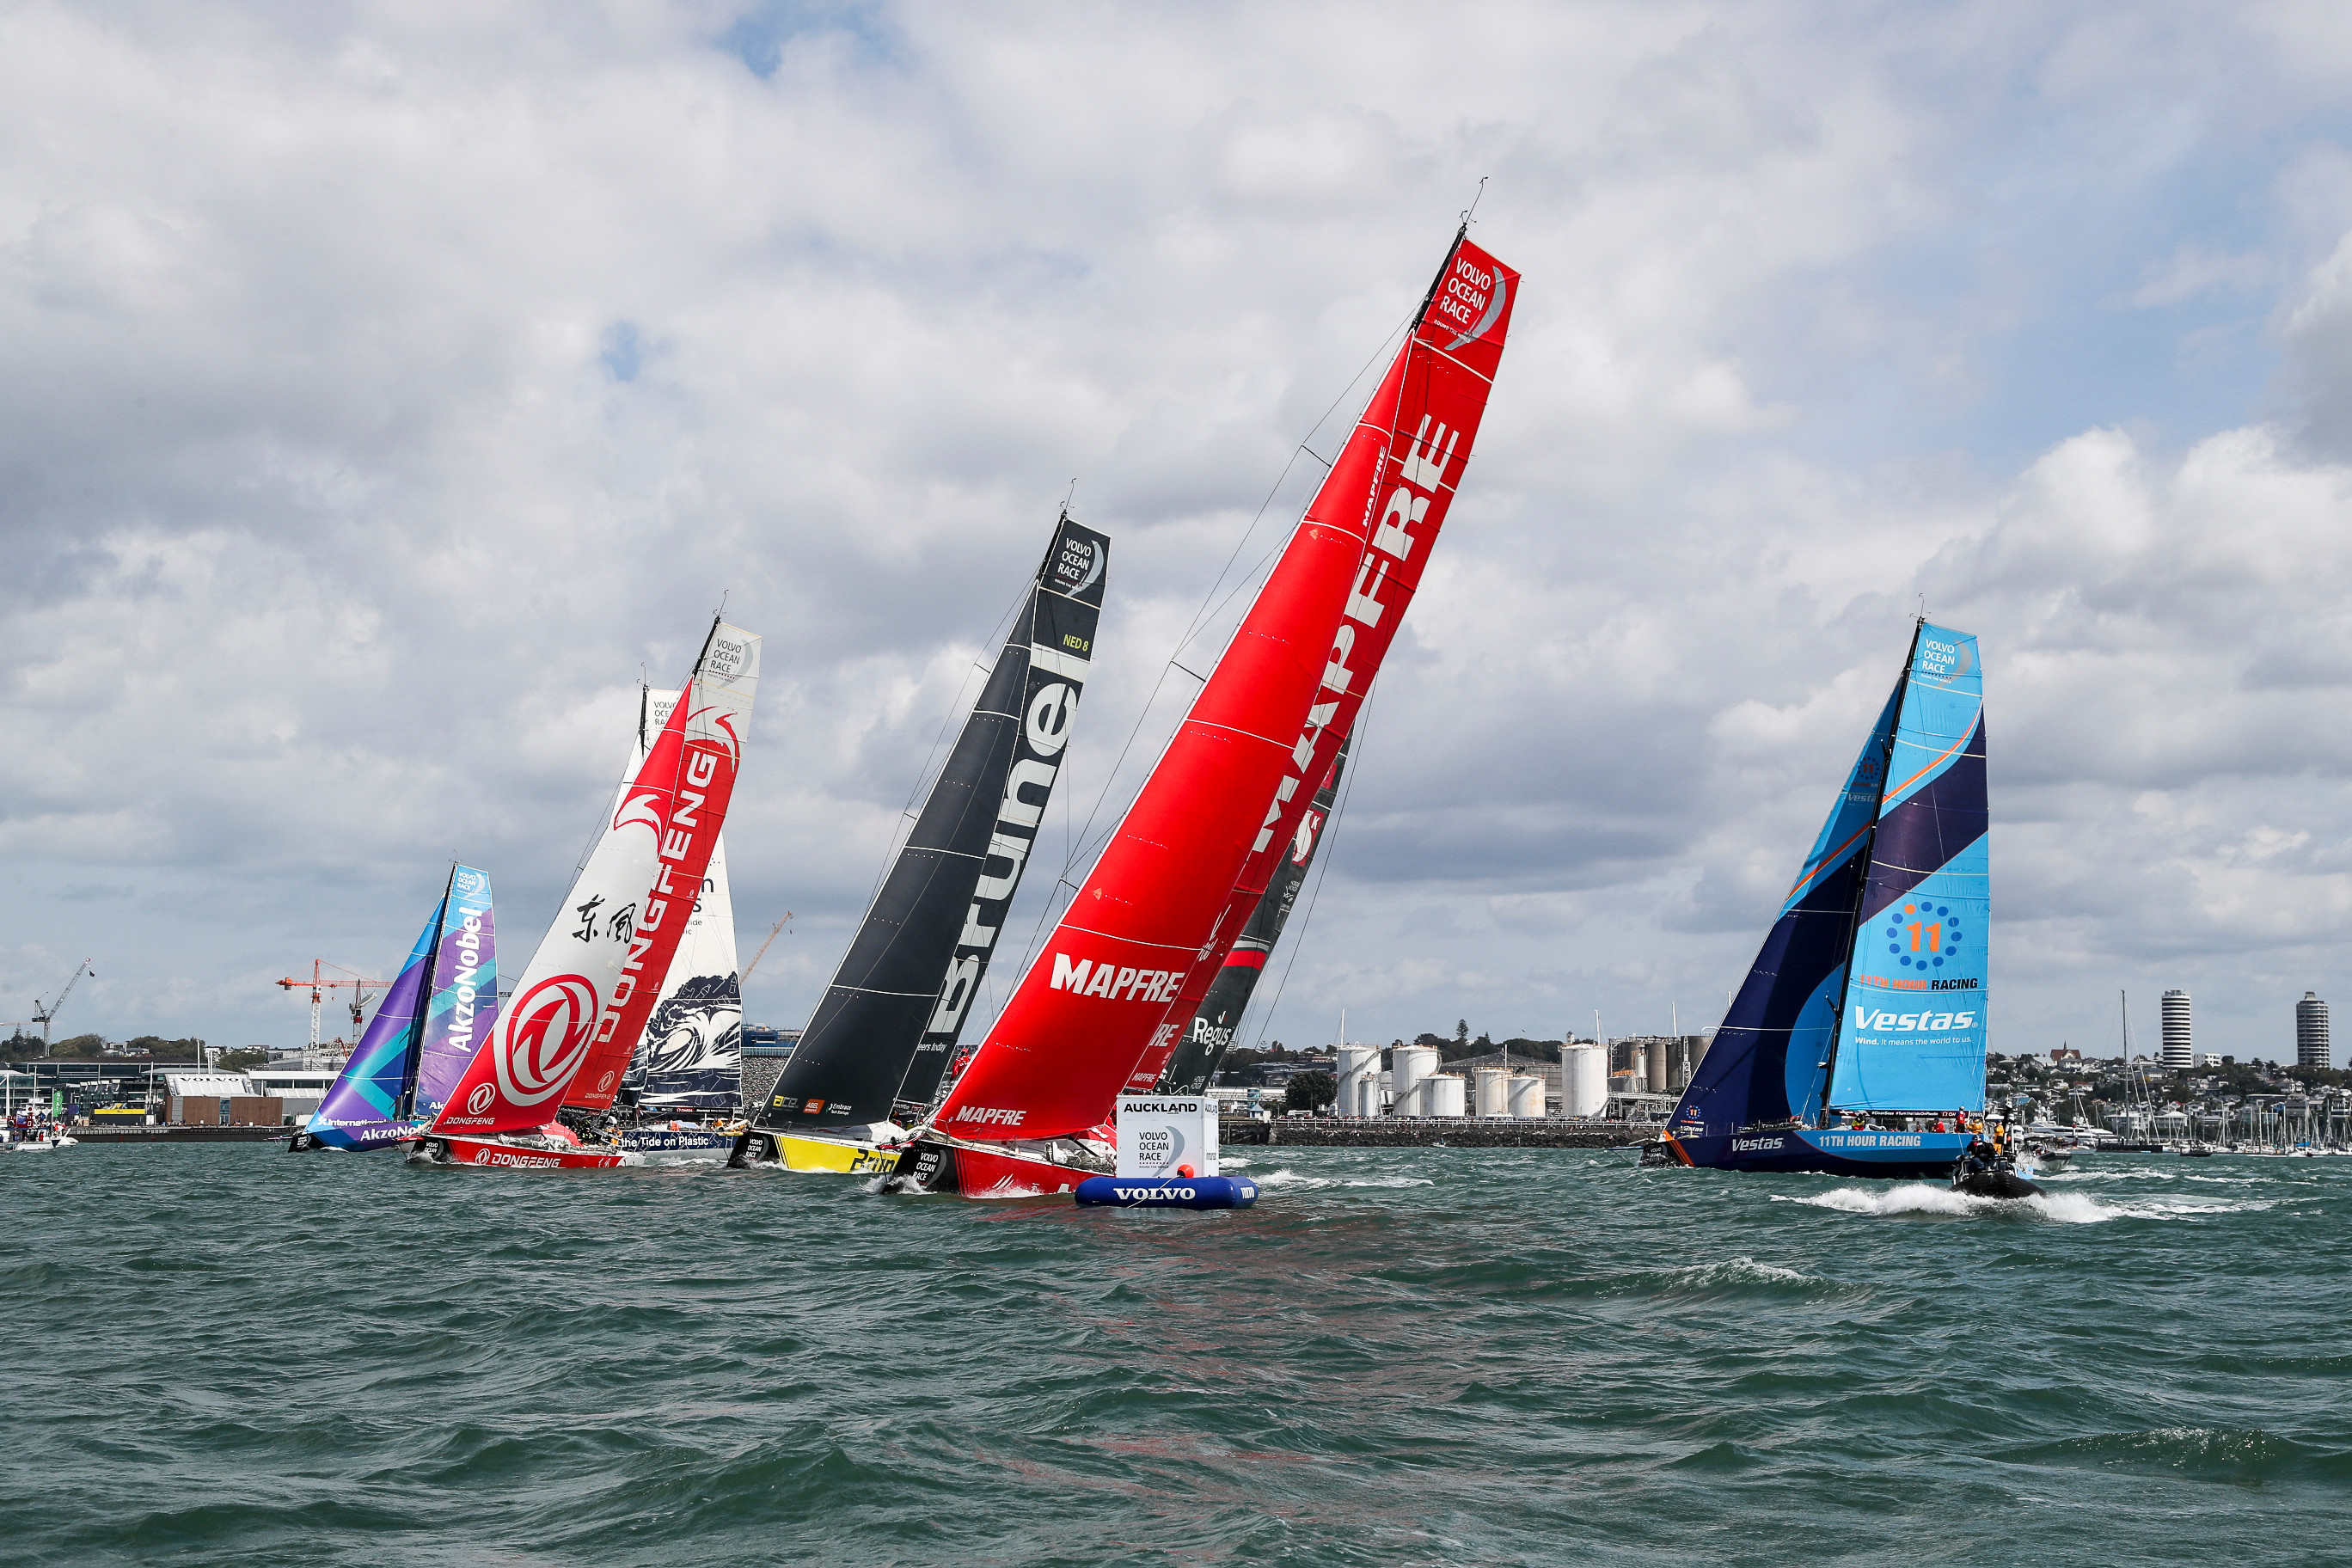 MAPFRE leads the Volvo Ocean Race fleet to start epic Southern Ocean leg